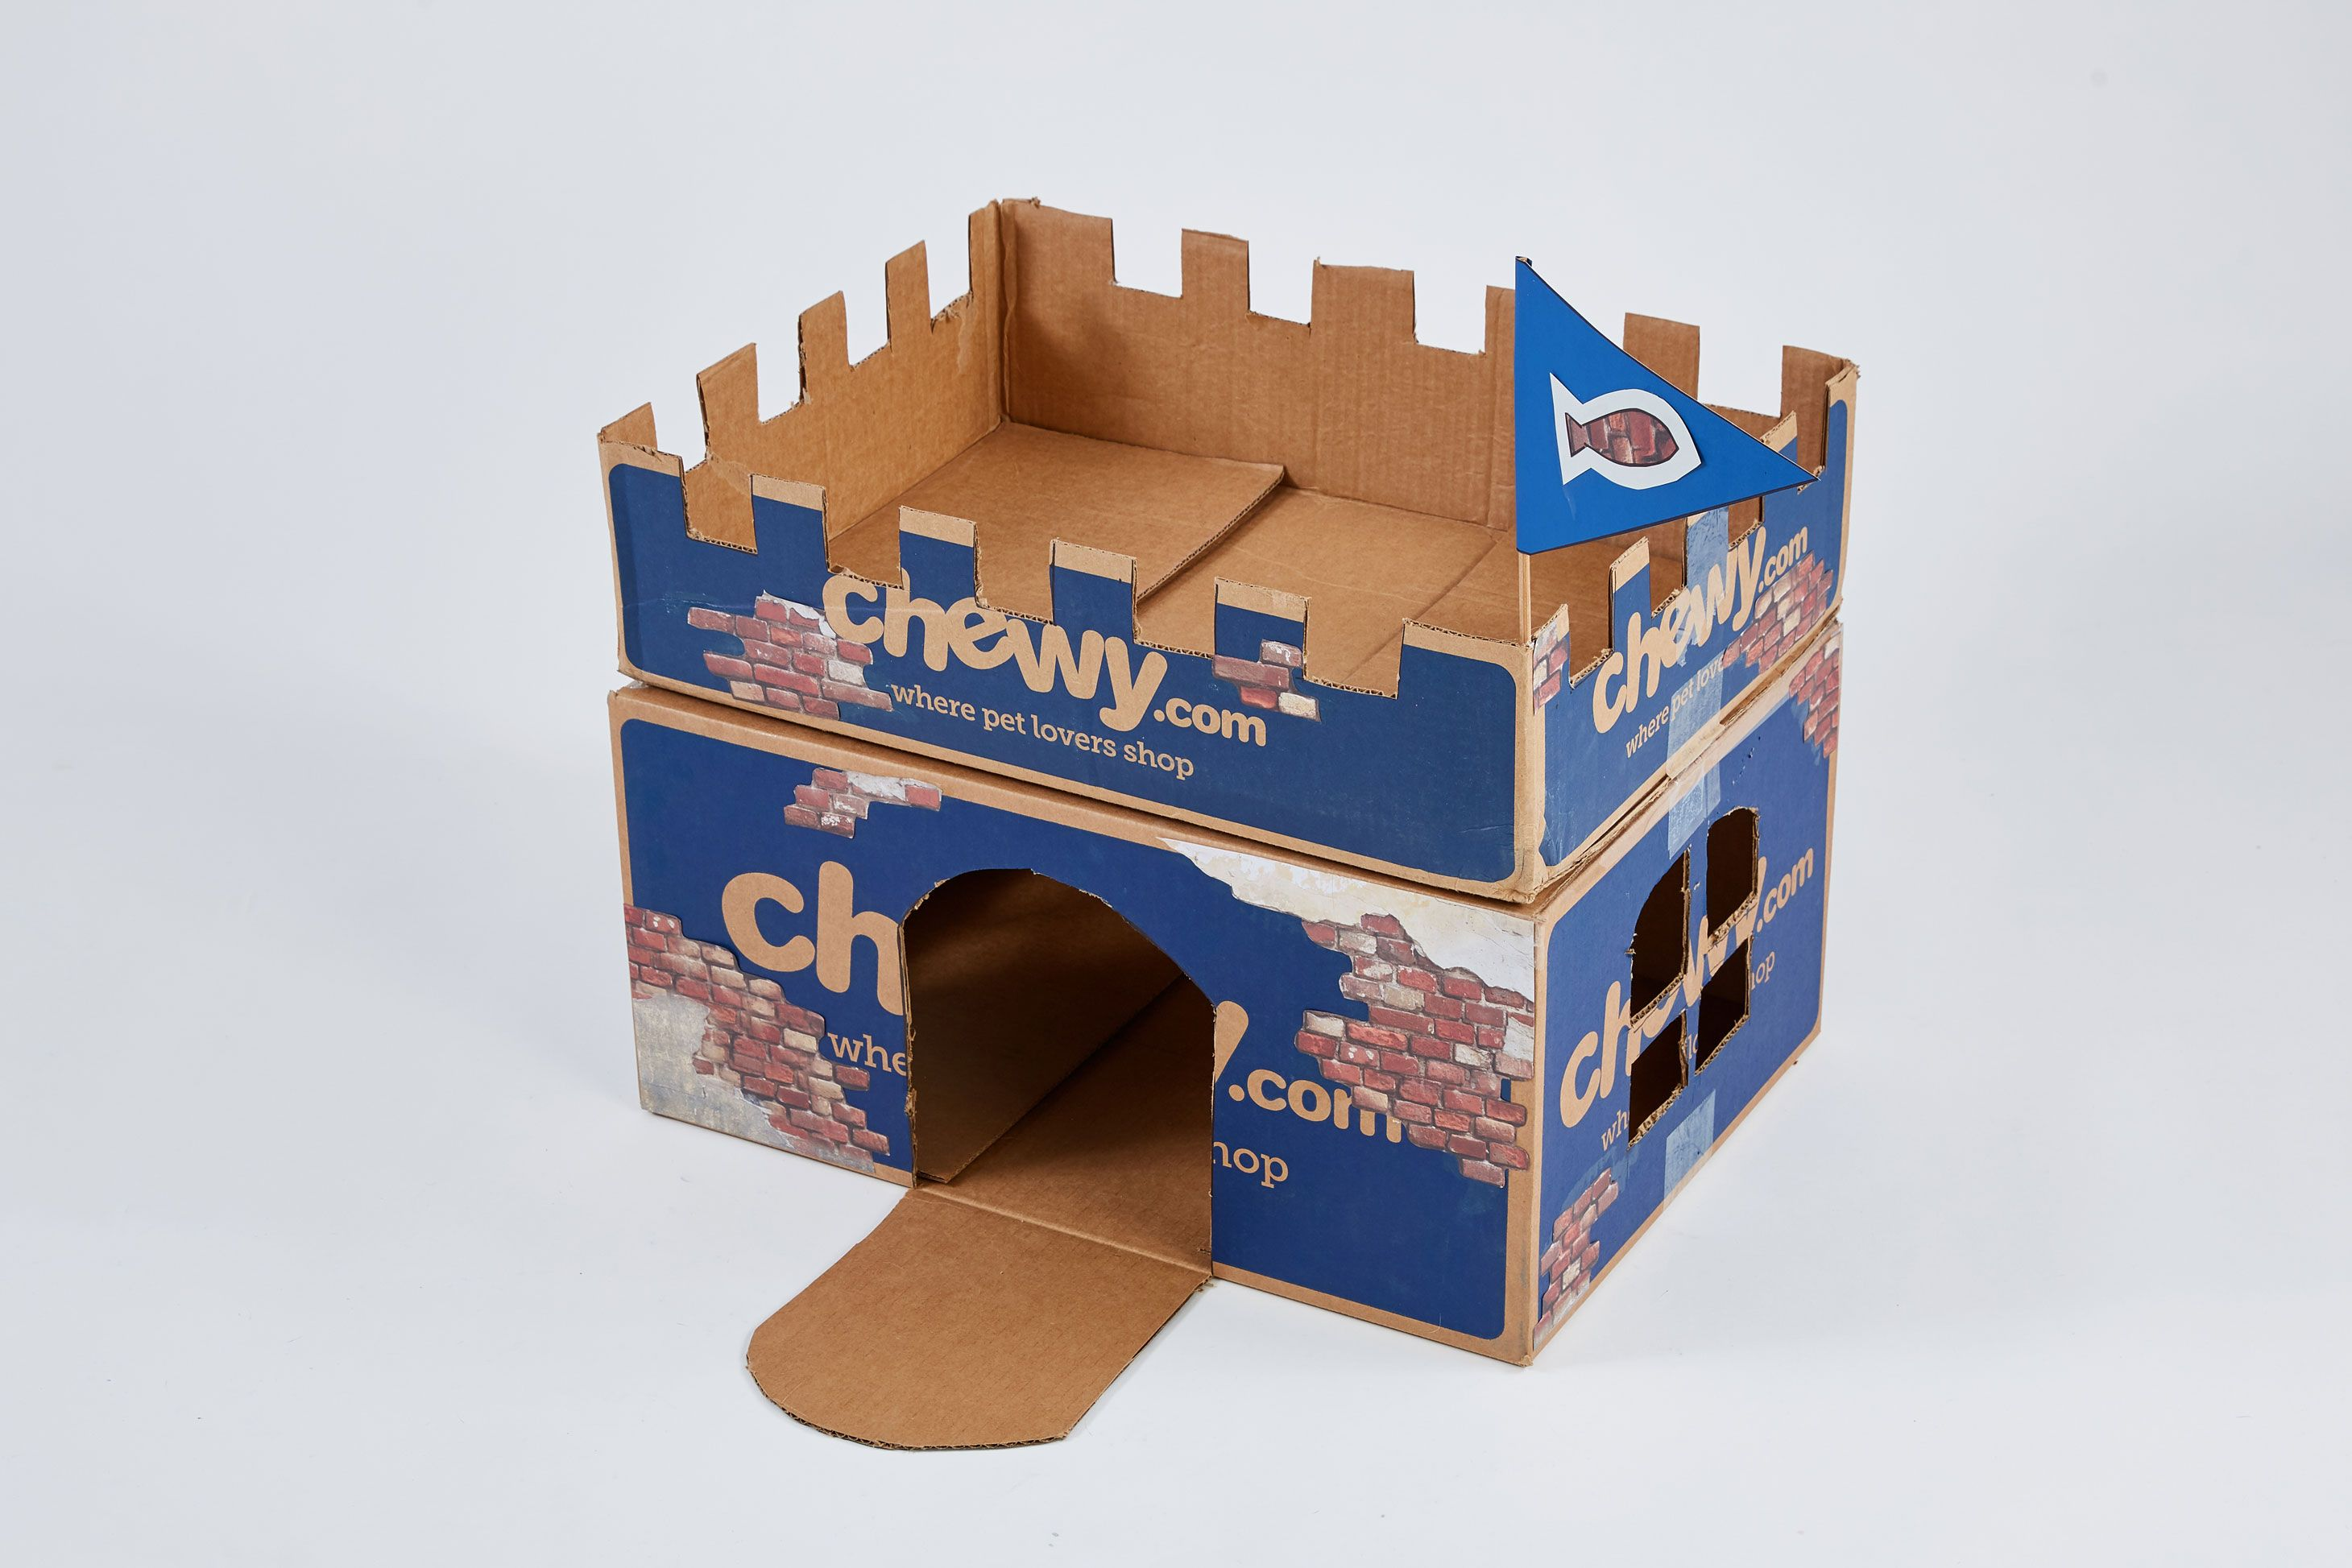 Chewy Box Craft Diy Cat House Cat Furniture Castle Craft Cat House Diy Cat Castle Cardboard Cat House